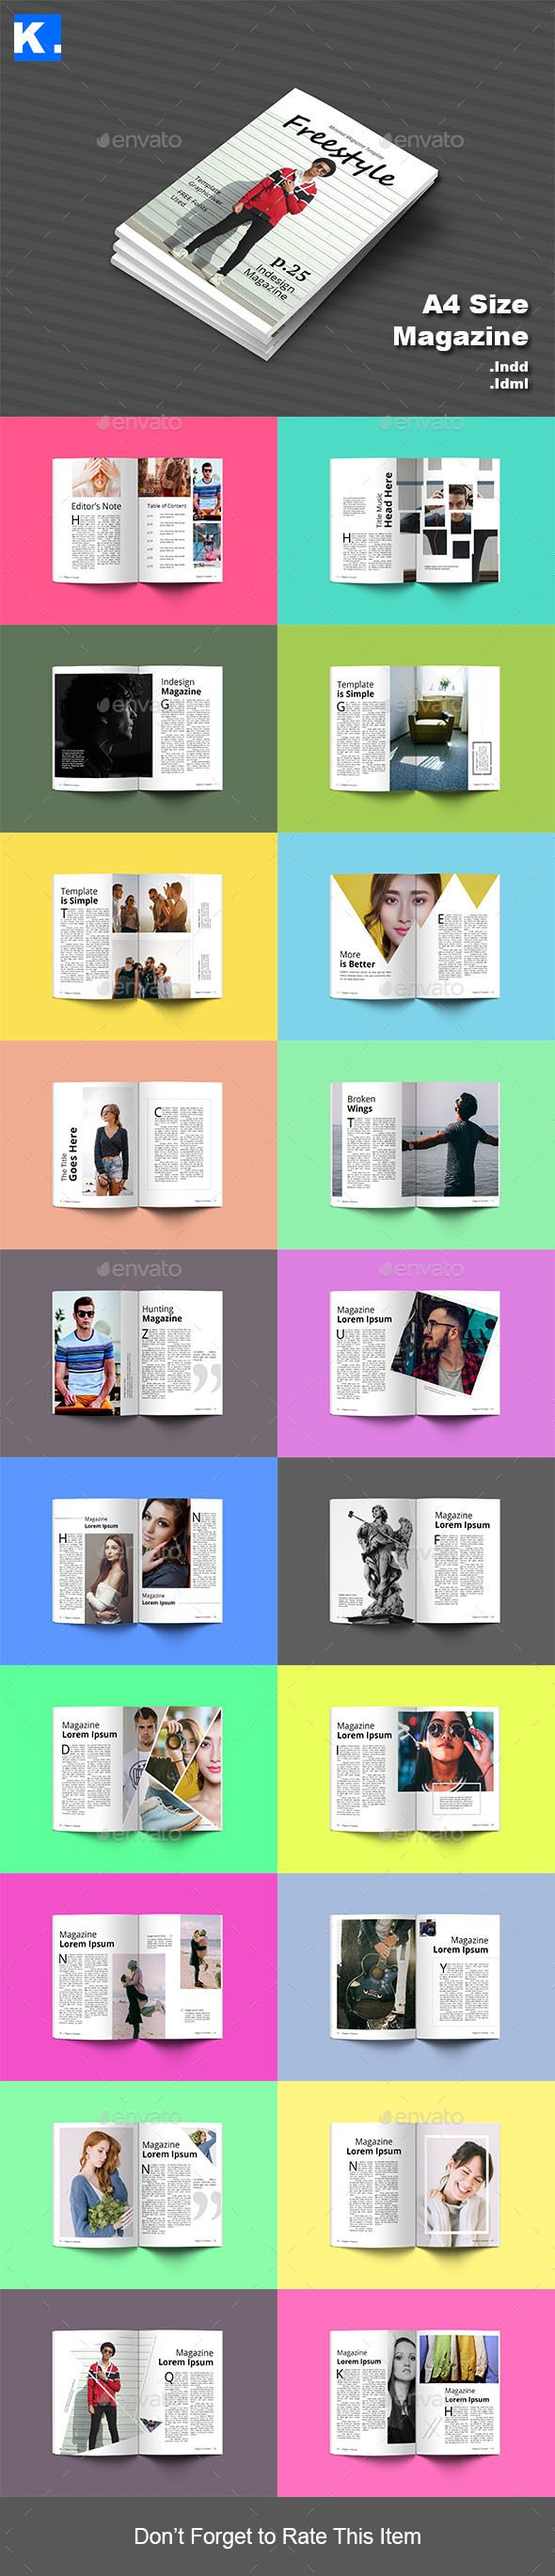 Indesign Magazine Template InDesign INDD